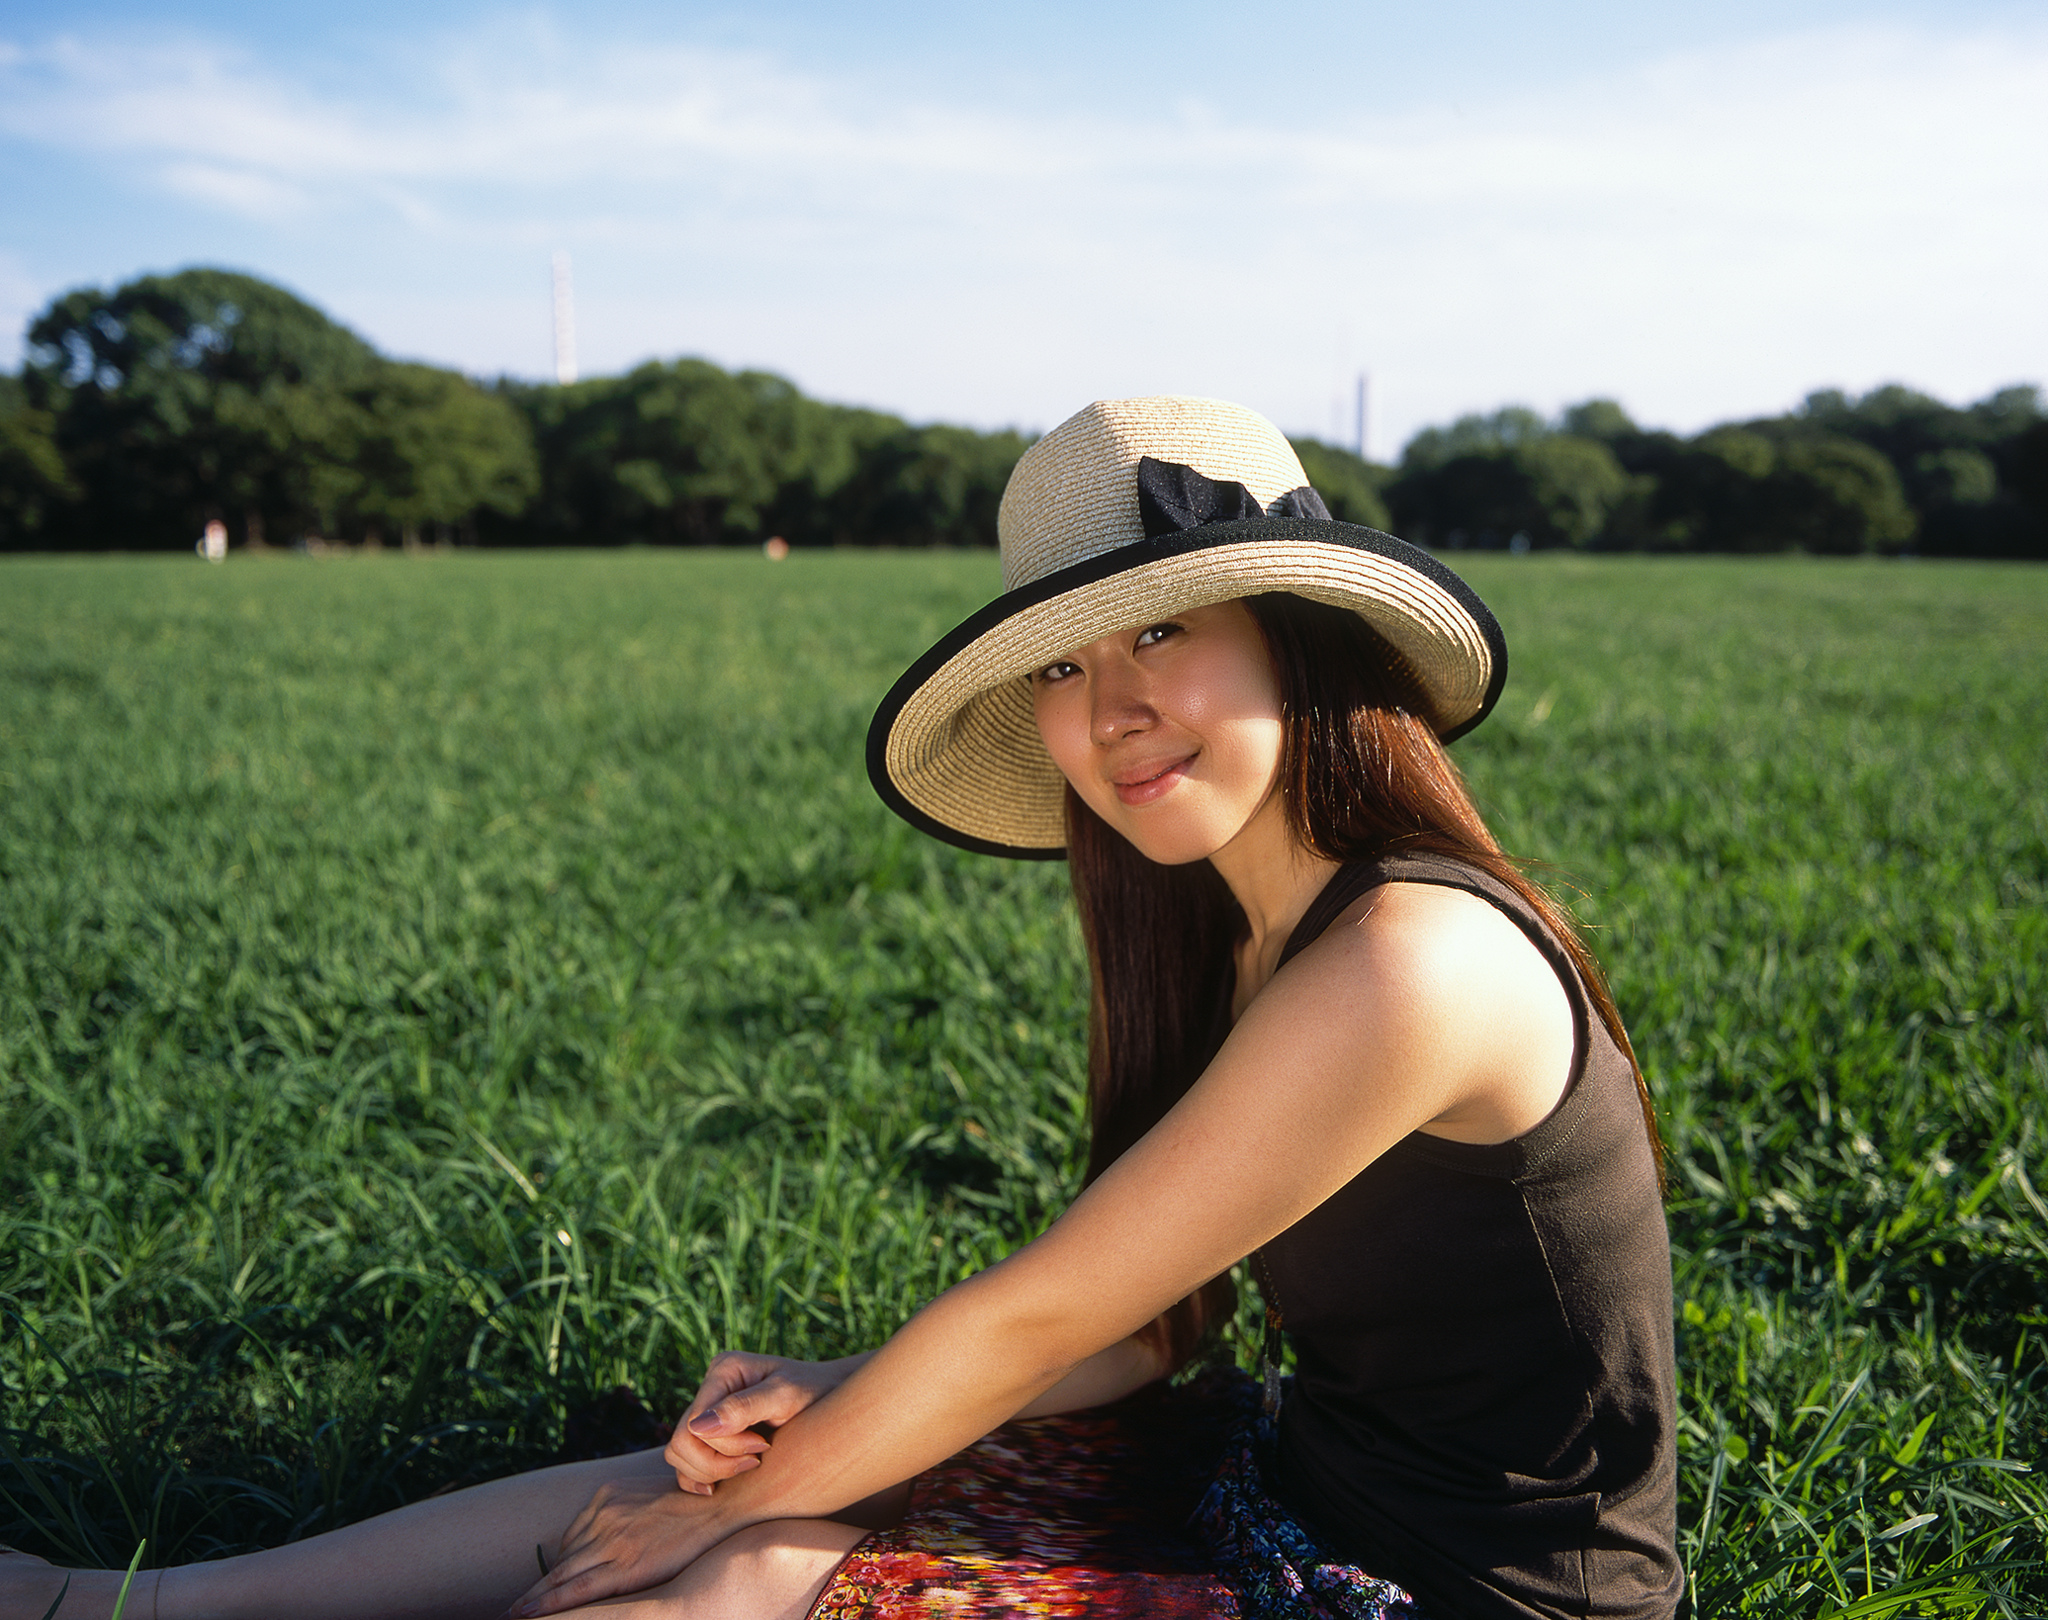 Yuka sitting in a grassy field on a clear day